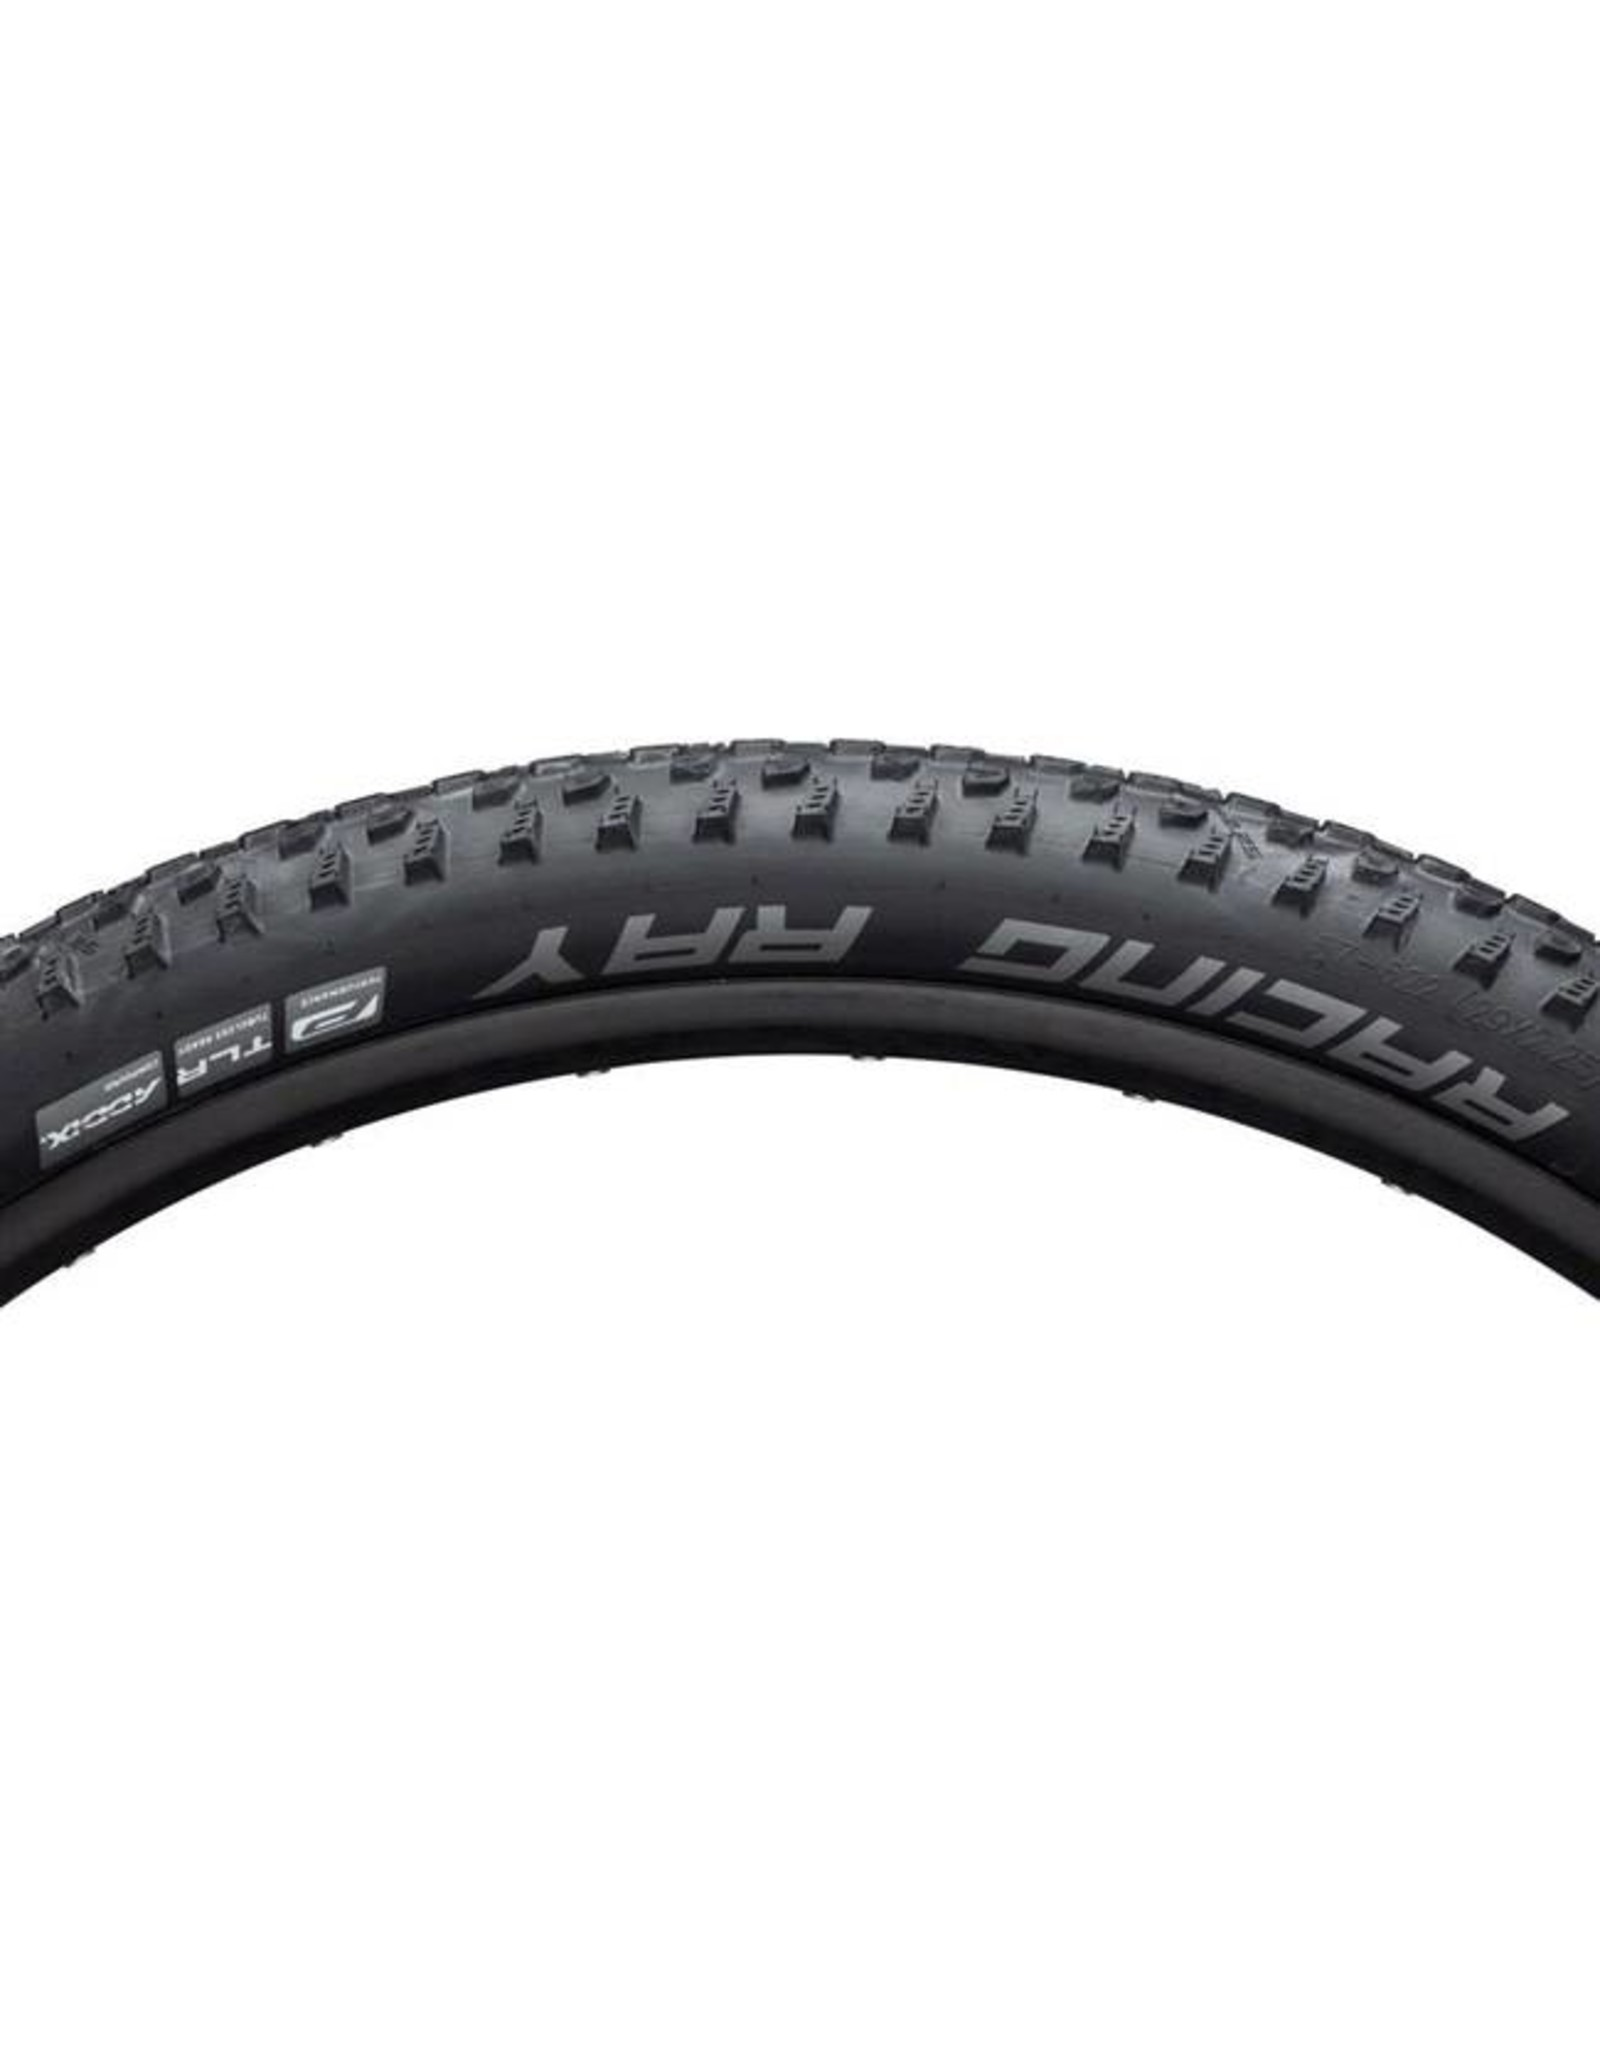 "Schwalbe Schwalbe Racing Ray Tire: 29 x 2.25"", Folding Bead, Performance Line, Addix Performance Compound, TwinSkin, Tubeless Ready, Black"